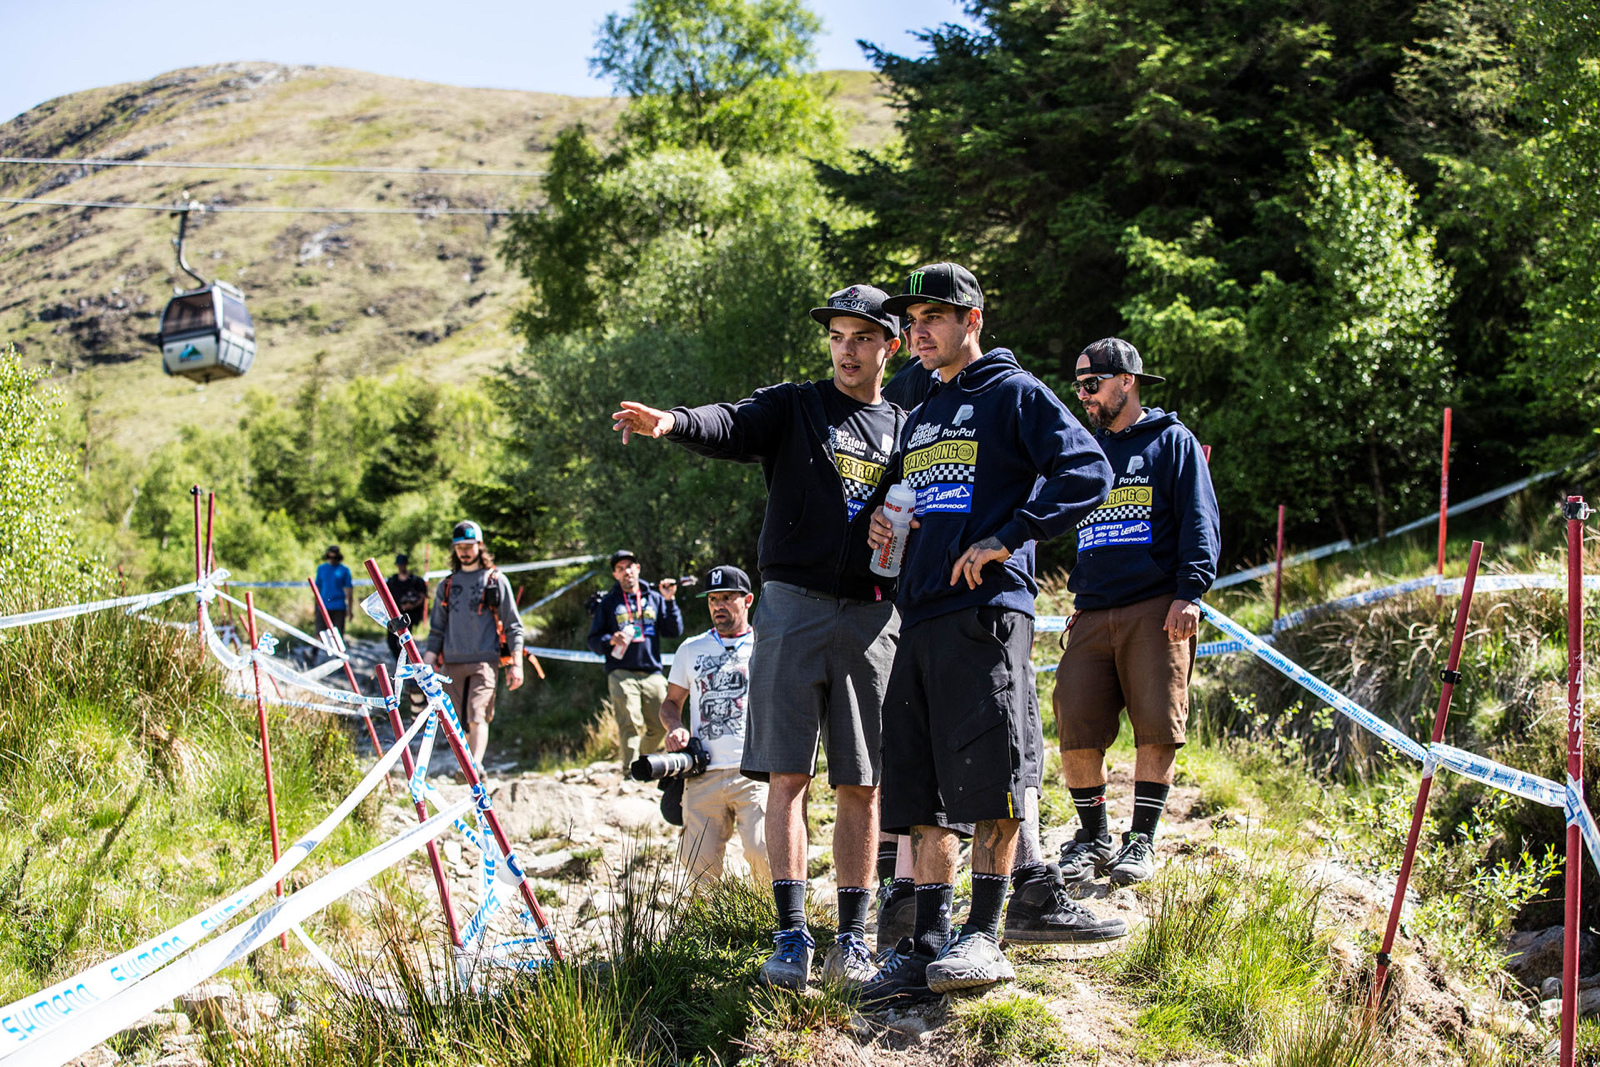 Team Chain Reaction Cycles Paypal - Fort William World Cup 2016. Photo credit Simon Nieborak